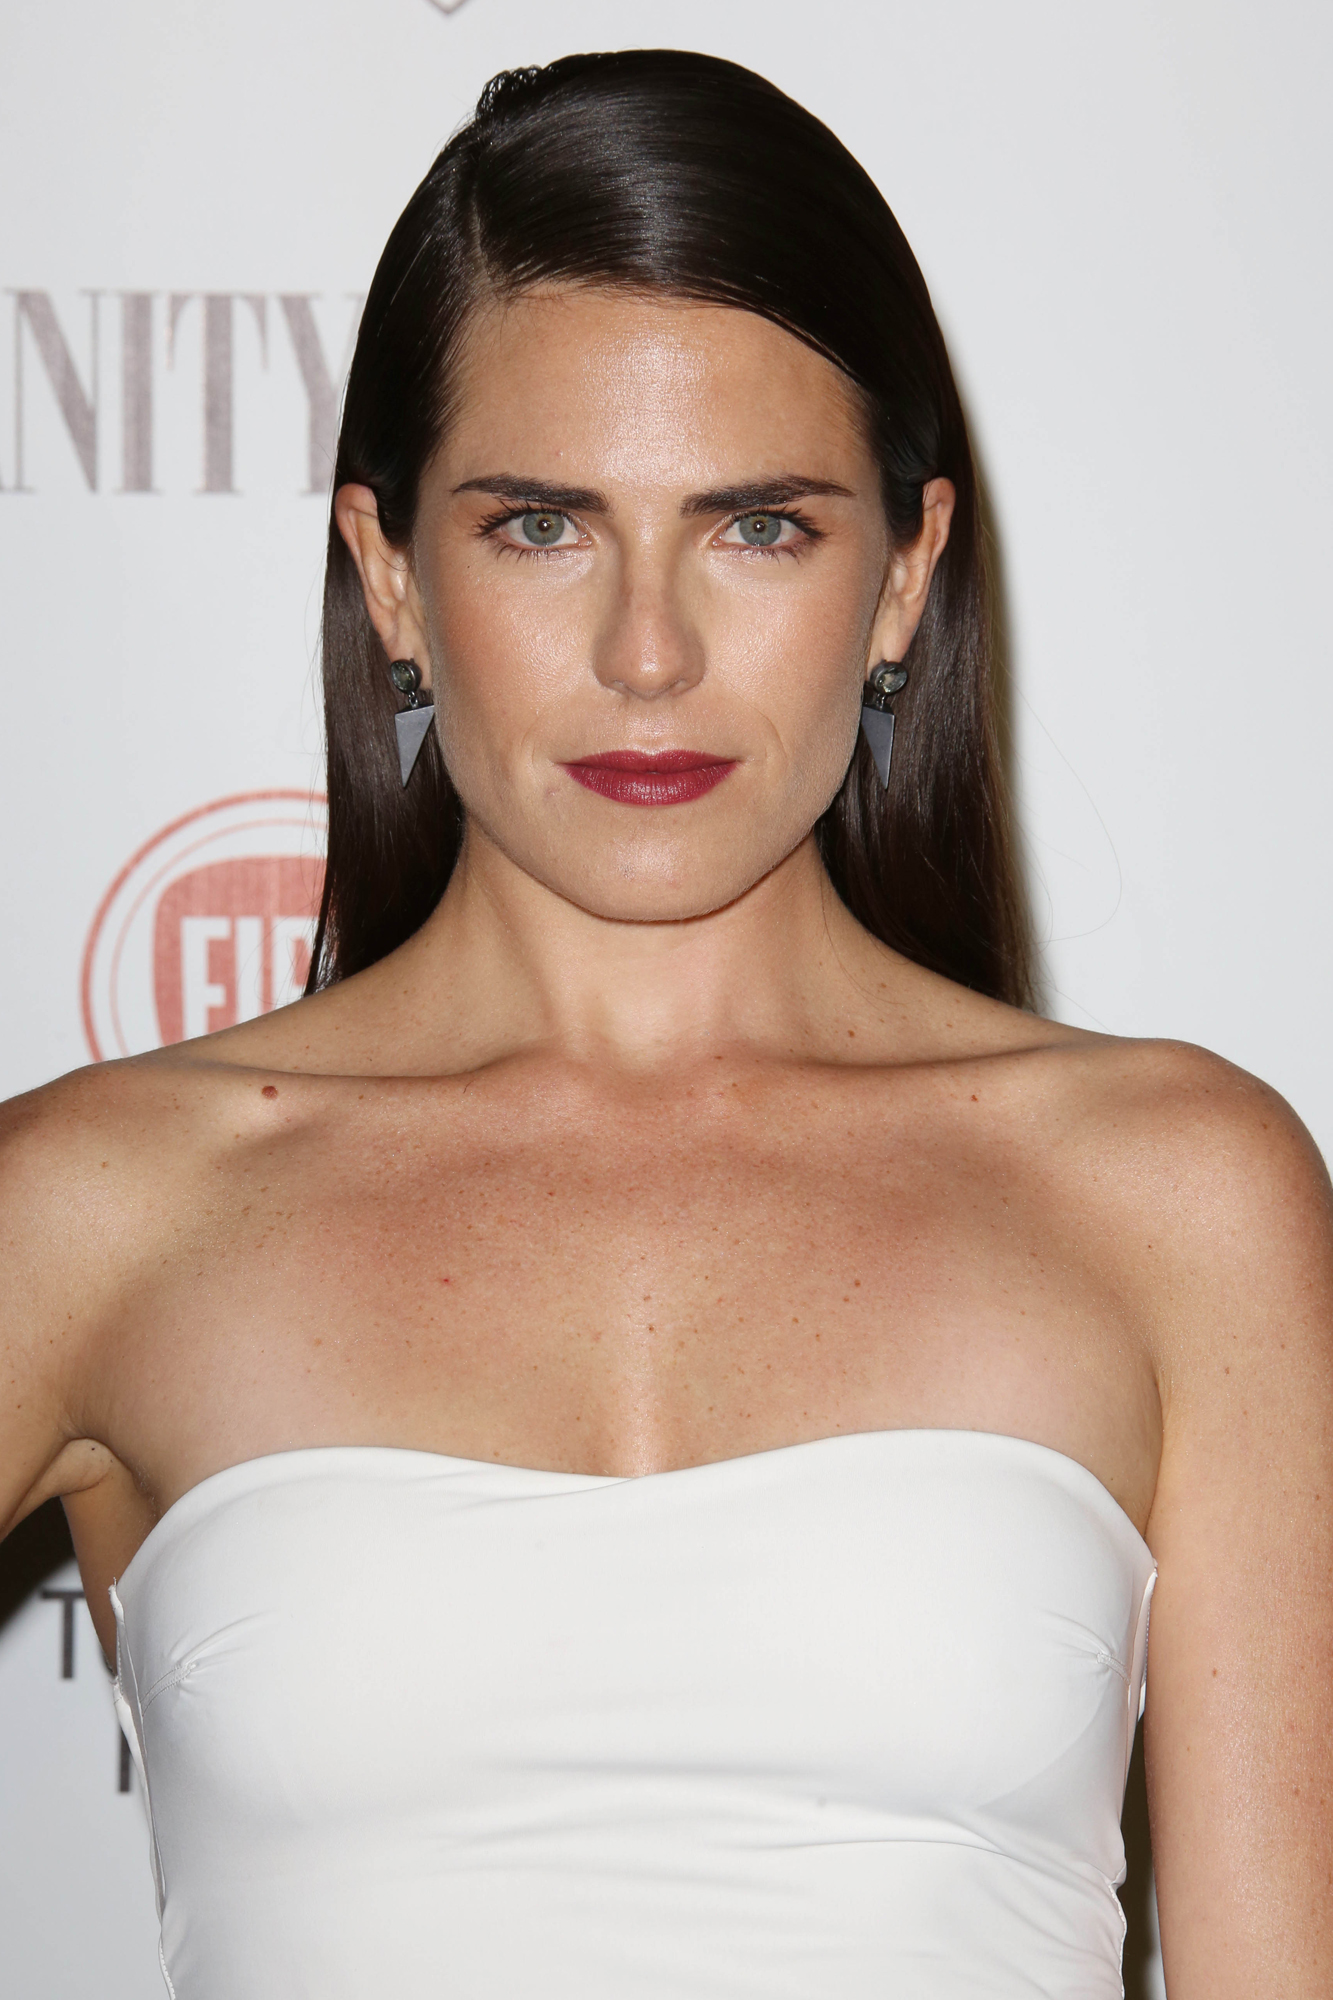 Vanity Fair and Fiat Celebration of Young Hollywood, Los Angeles, America - 17 Feb 2015